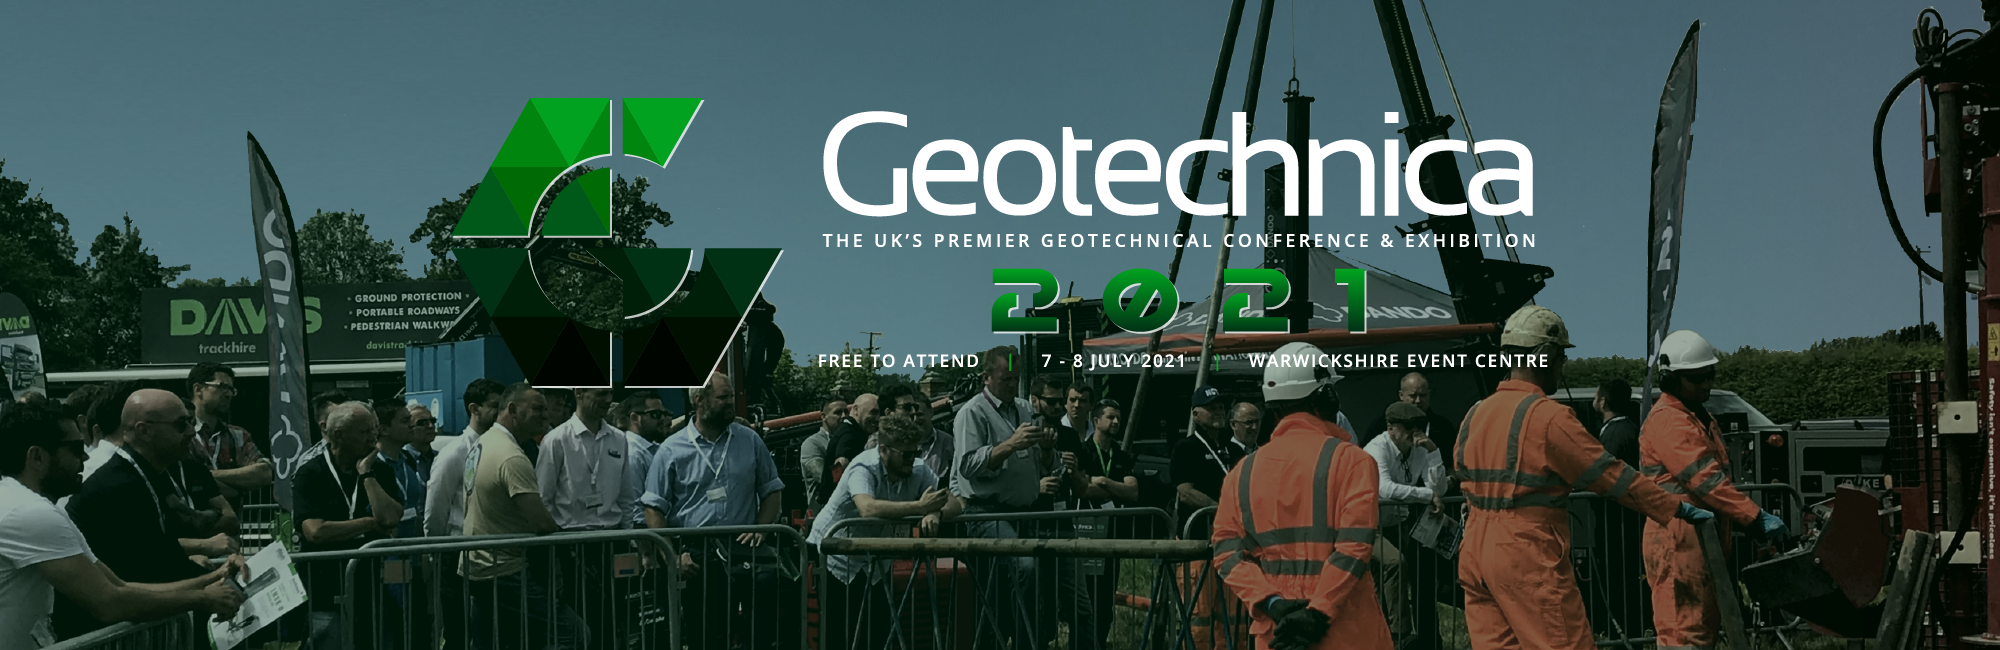 <a href='https://www.equipegroup.com/geotechnica.html' class='sy-caption-green'>Register to attend now</a>